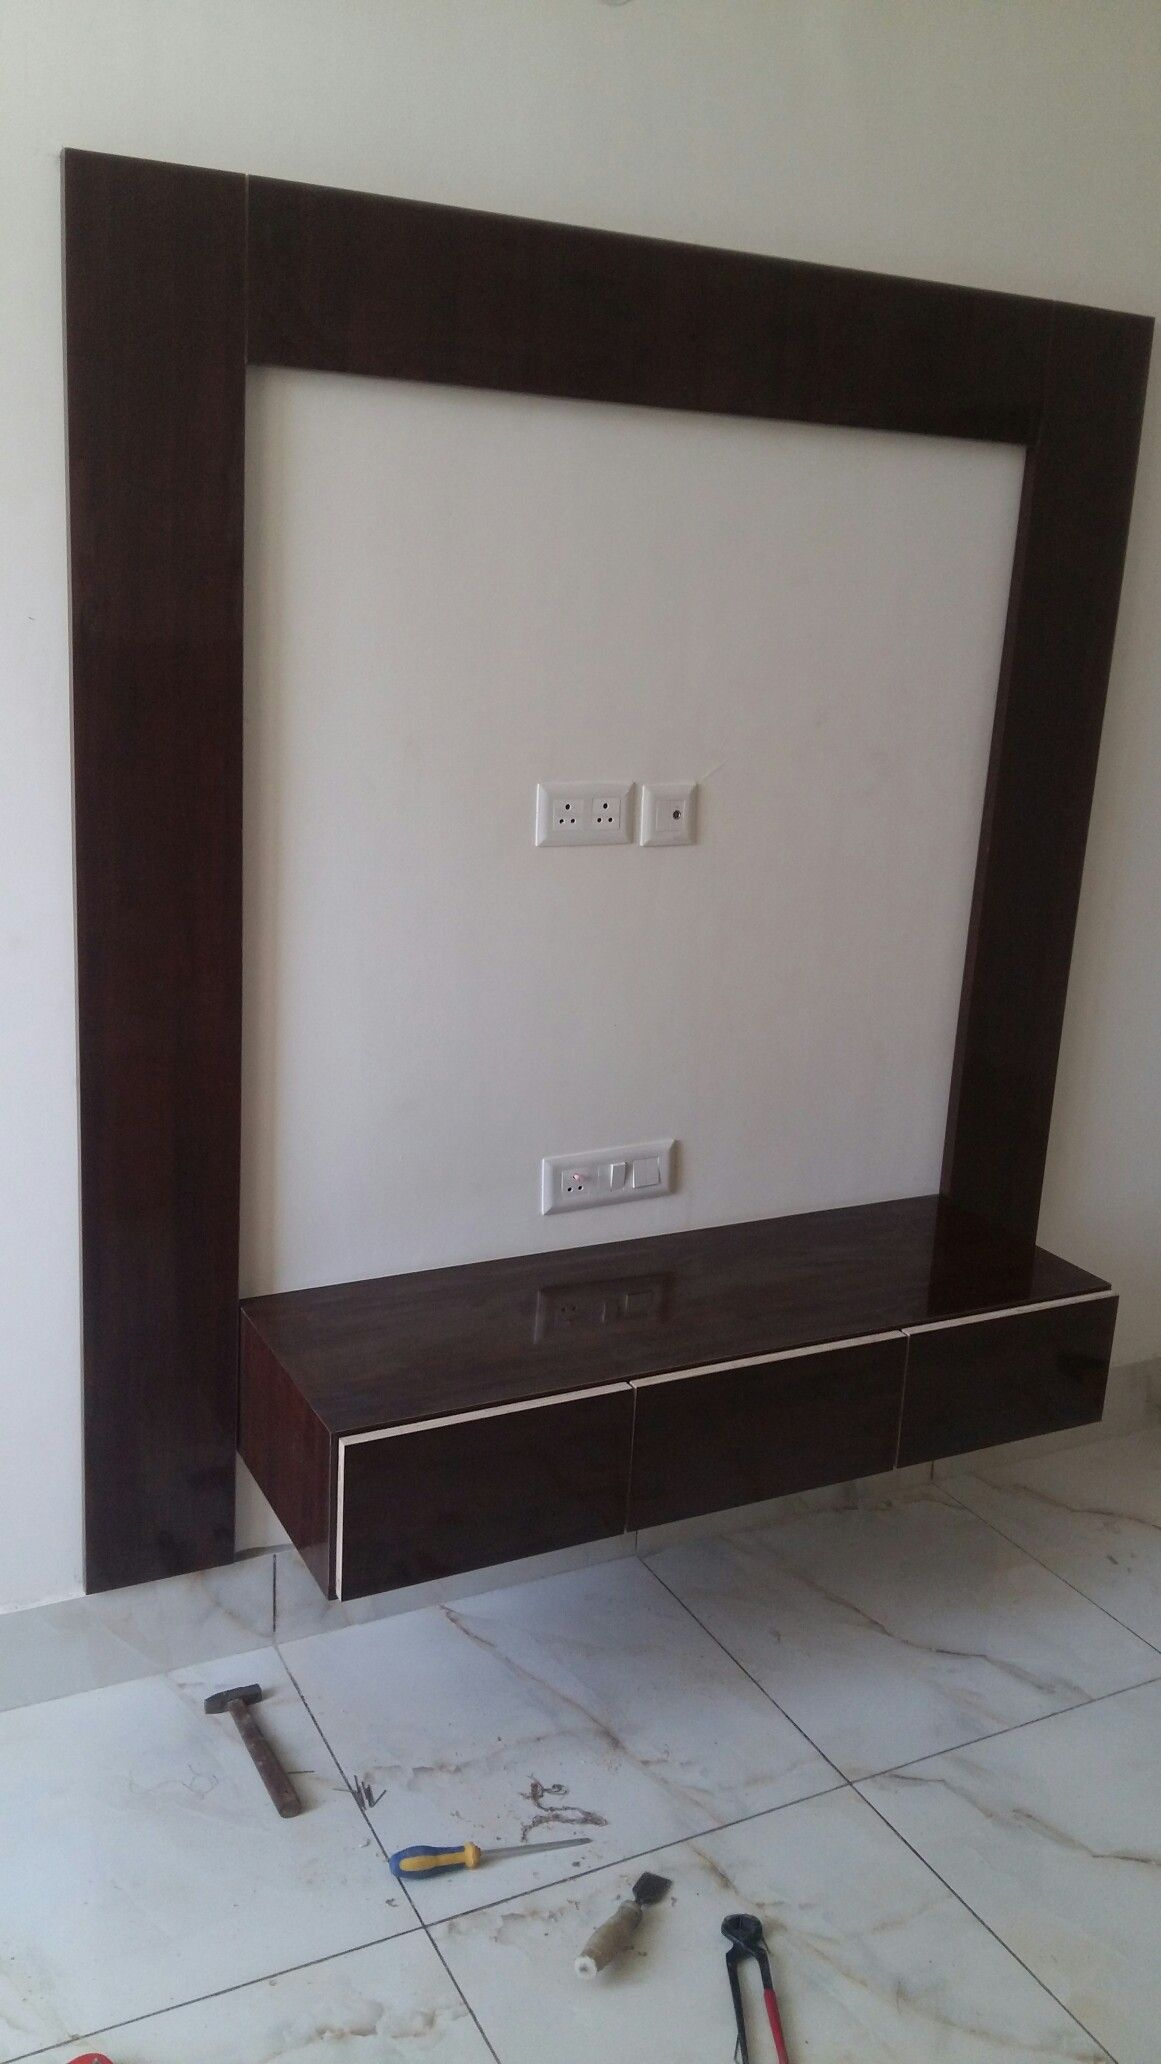 Latest Tv Unit Design: It's So Simple And Low Price And Beautiful Led Panel